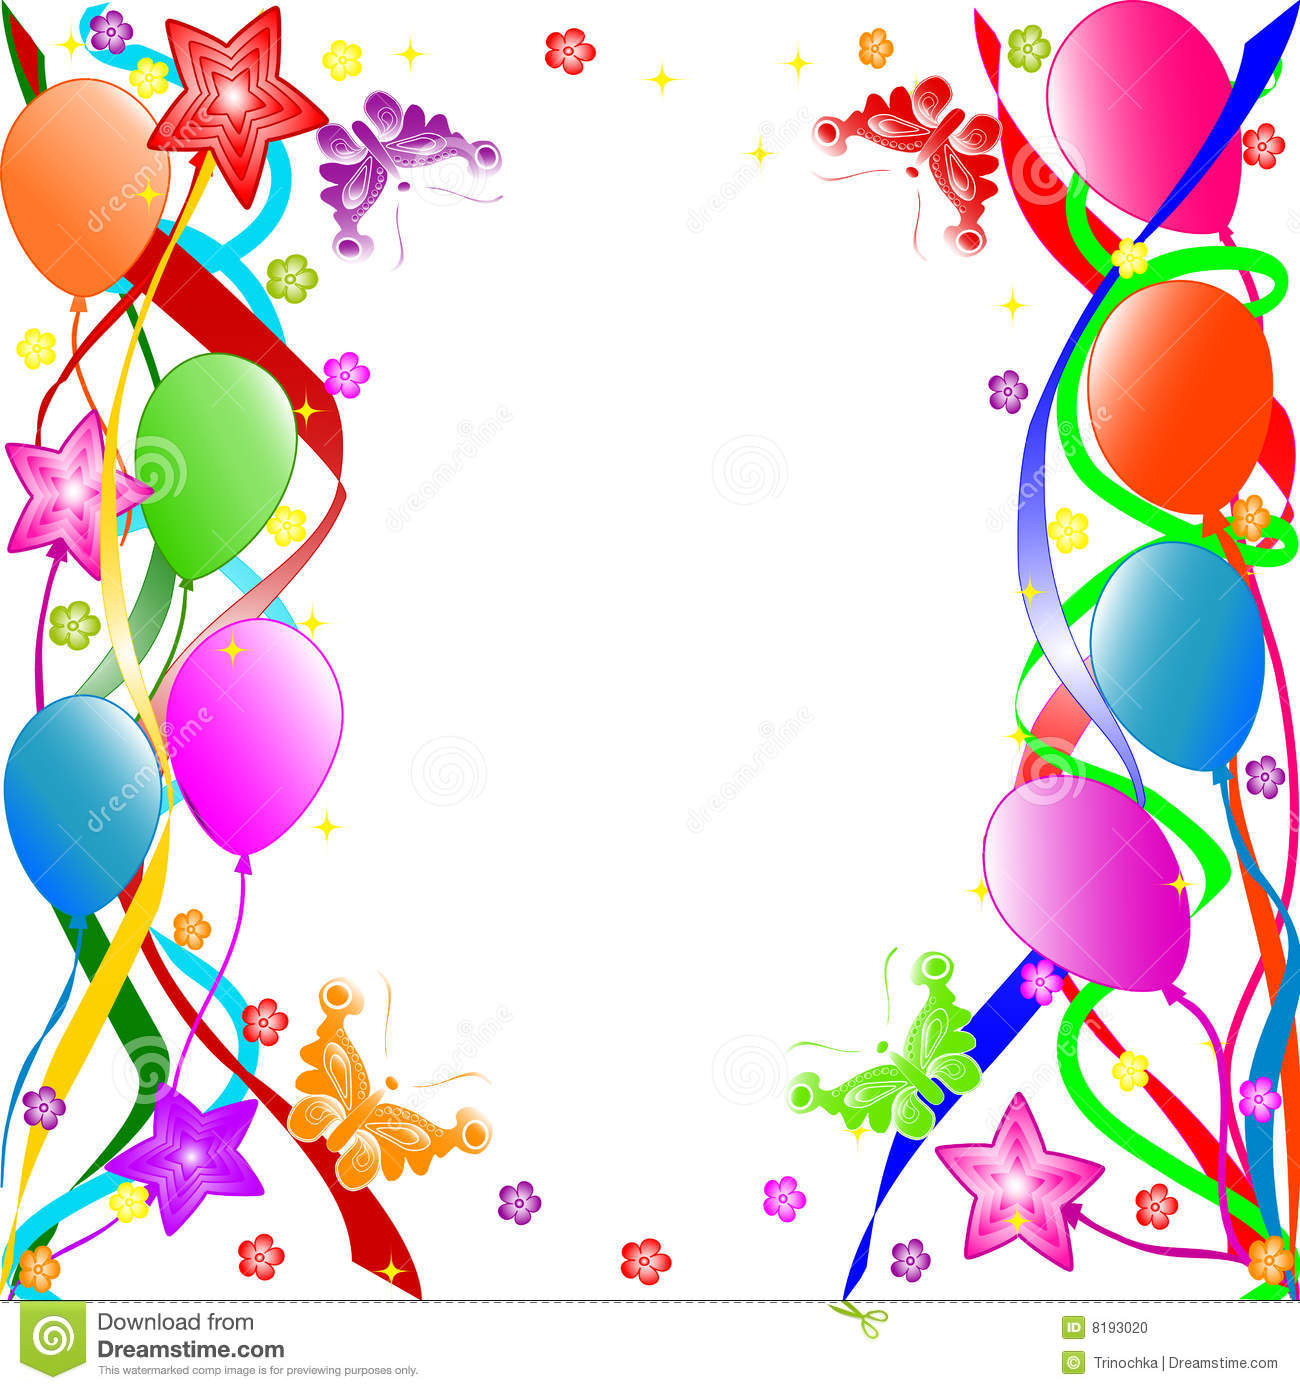 Happy Birthday Background Royalty Free Stock Images - Image: 8023059